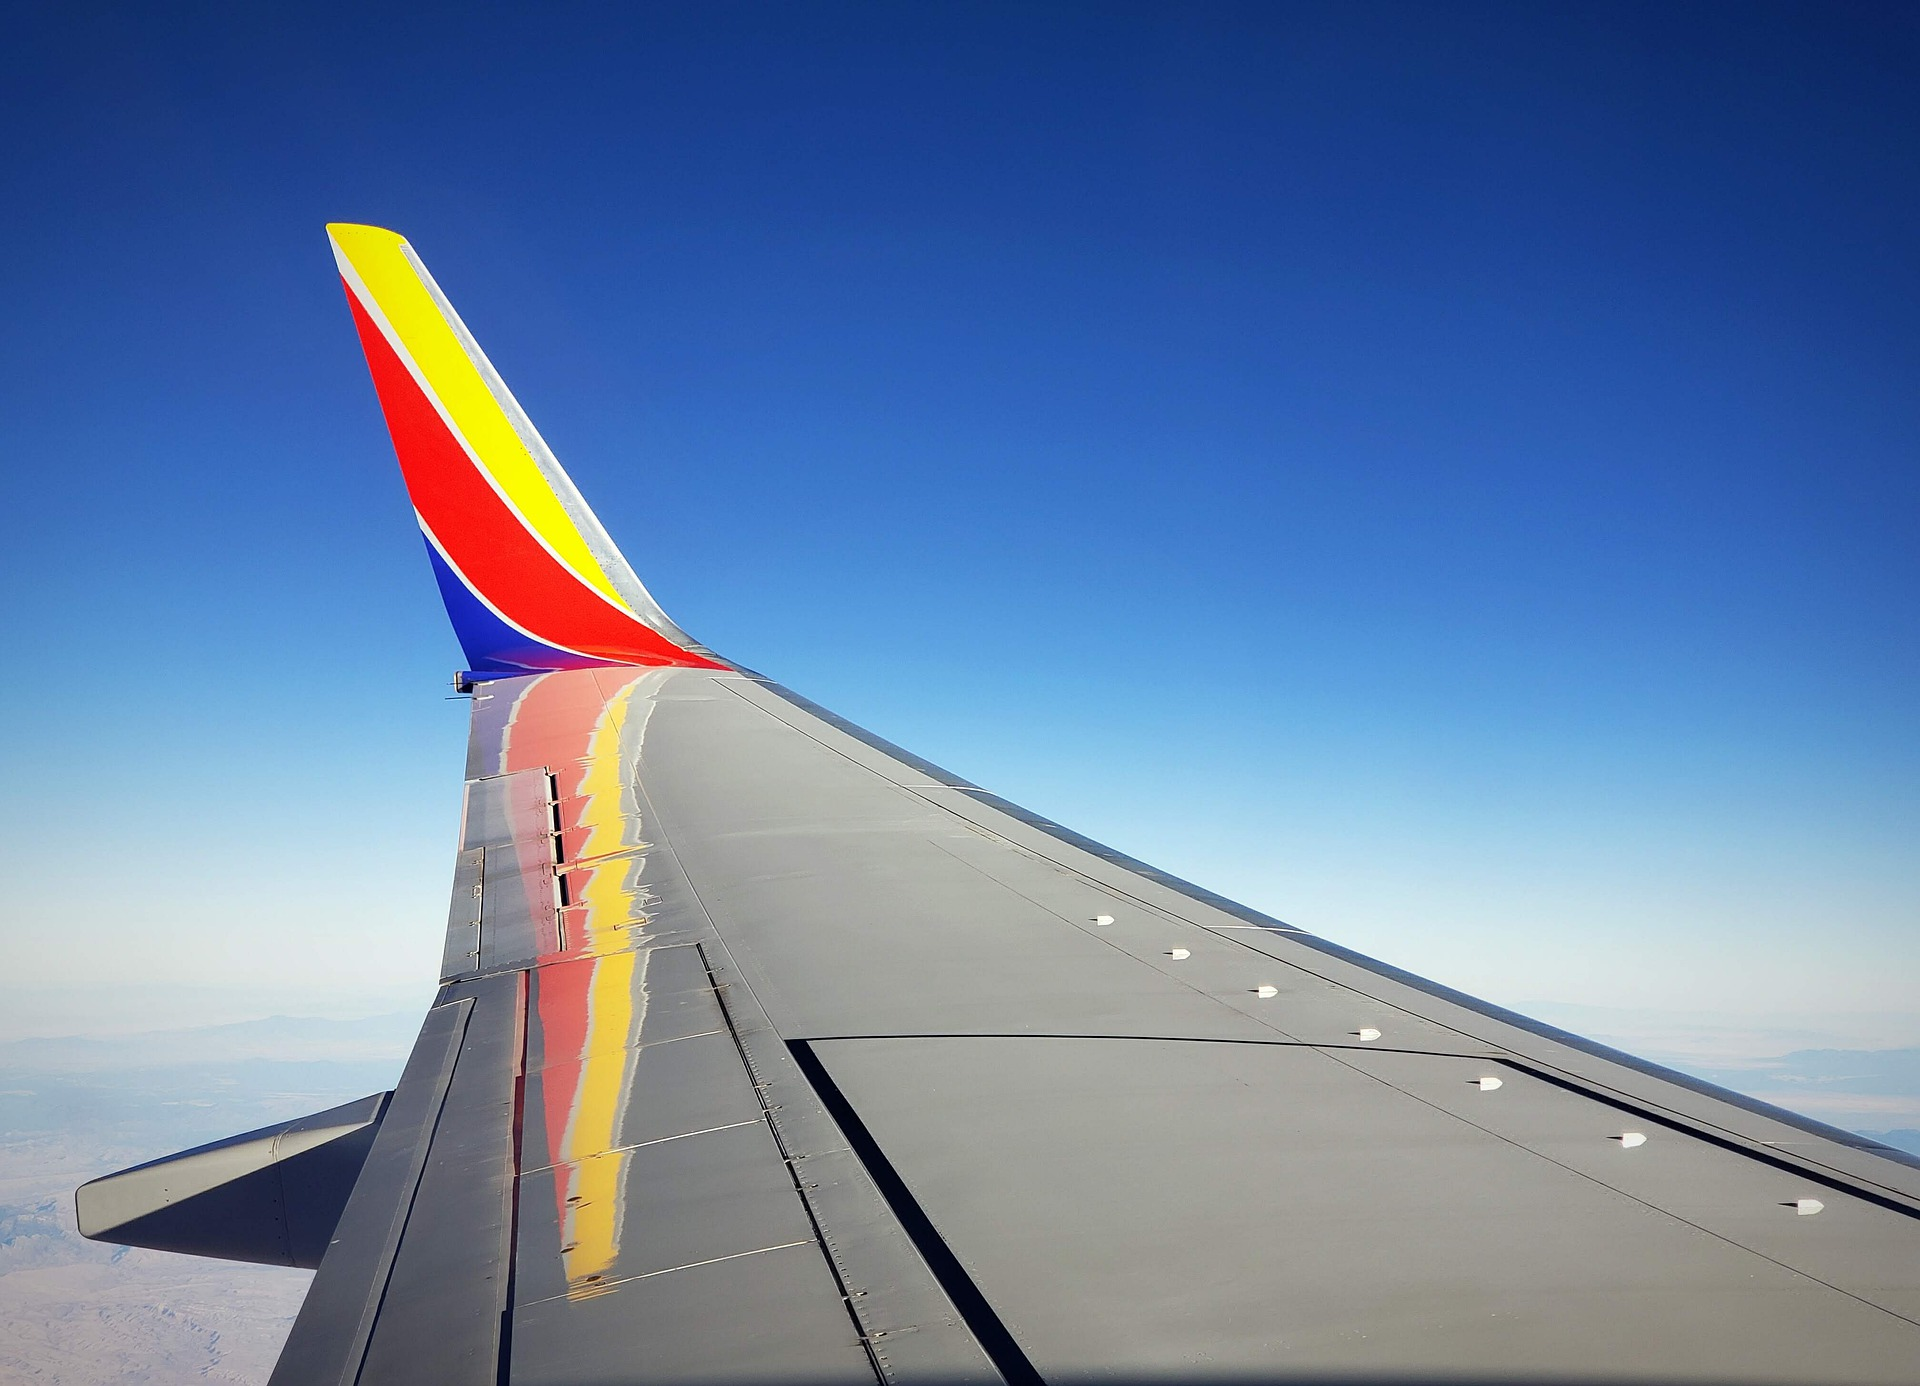 Southwest Cancels 1,000 Flights & Blames It on Weather, Air Traffic Control Shortly after Pilots Sue over Vaccine Mandate. Coincidence?